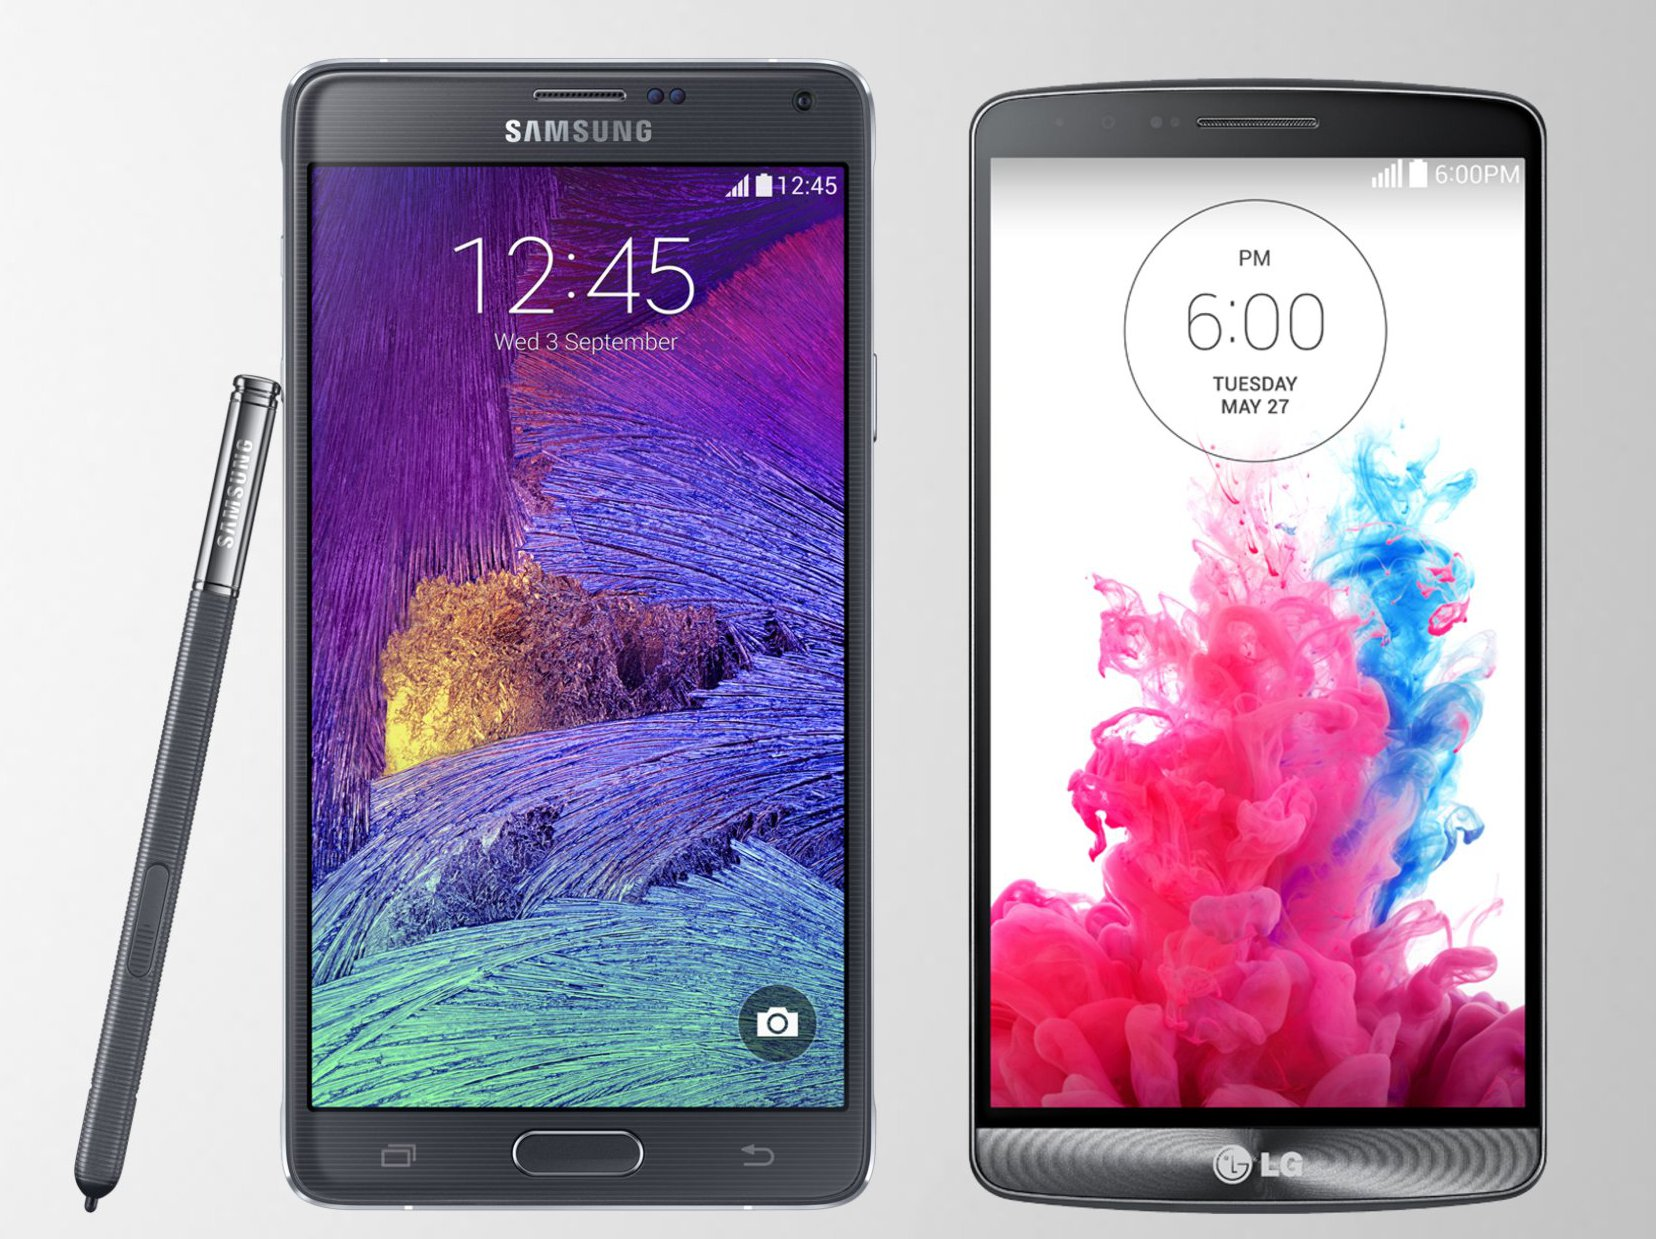 Galaxy Note 4 And LG G3 Now Available On Sprint Lease Scheme